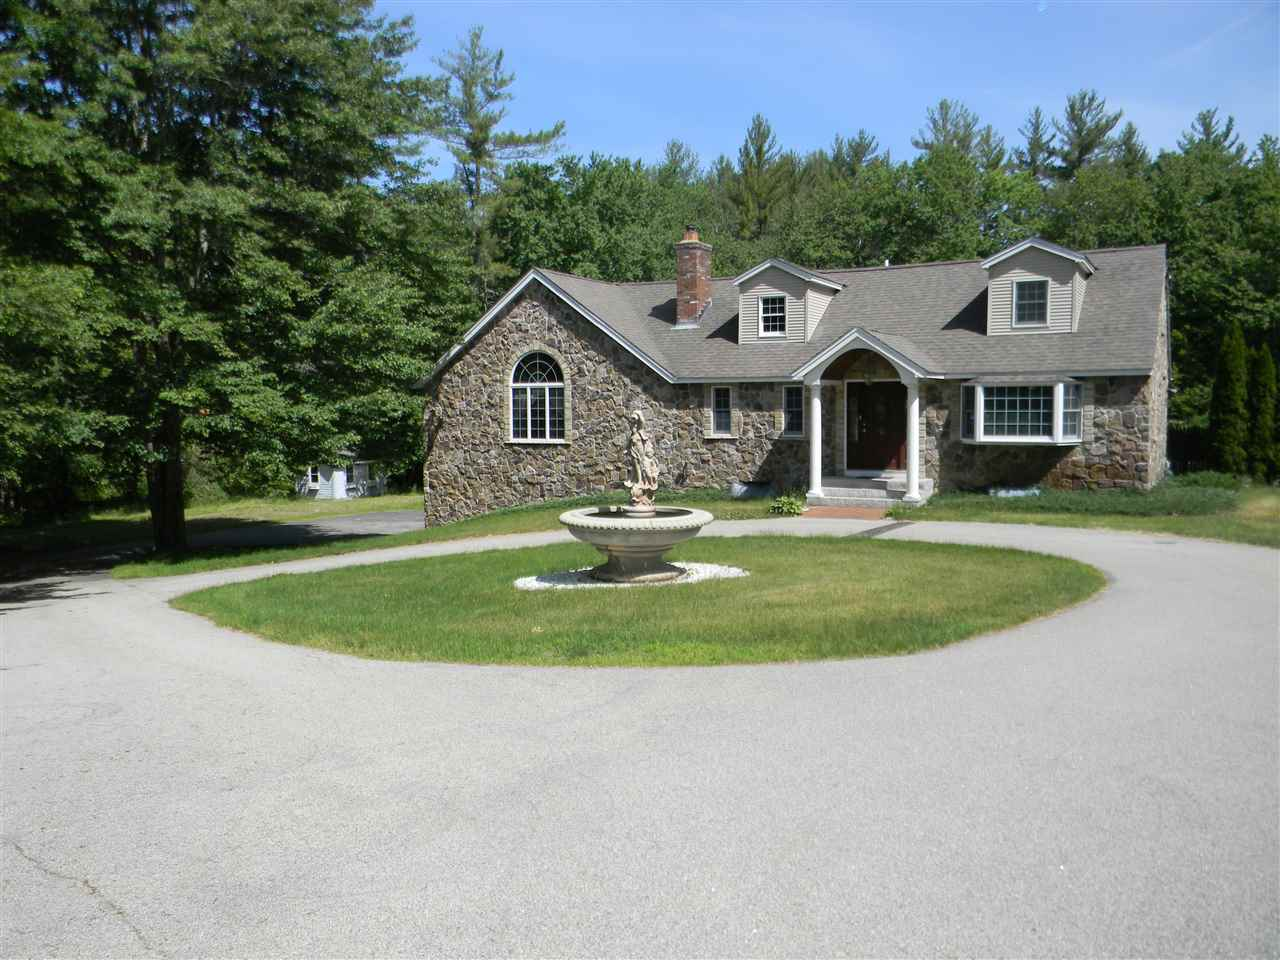 Garage Boston Manor Road 4 Bed 3 Bath Home In Goffstown For 394 900